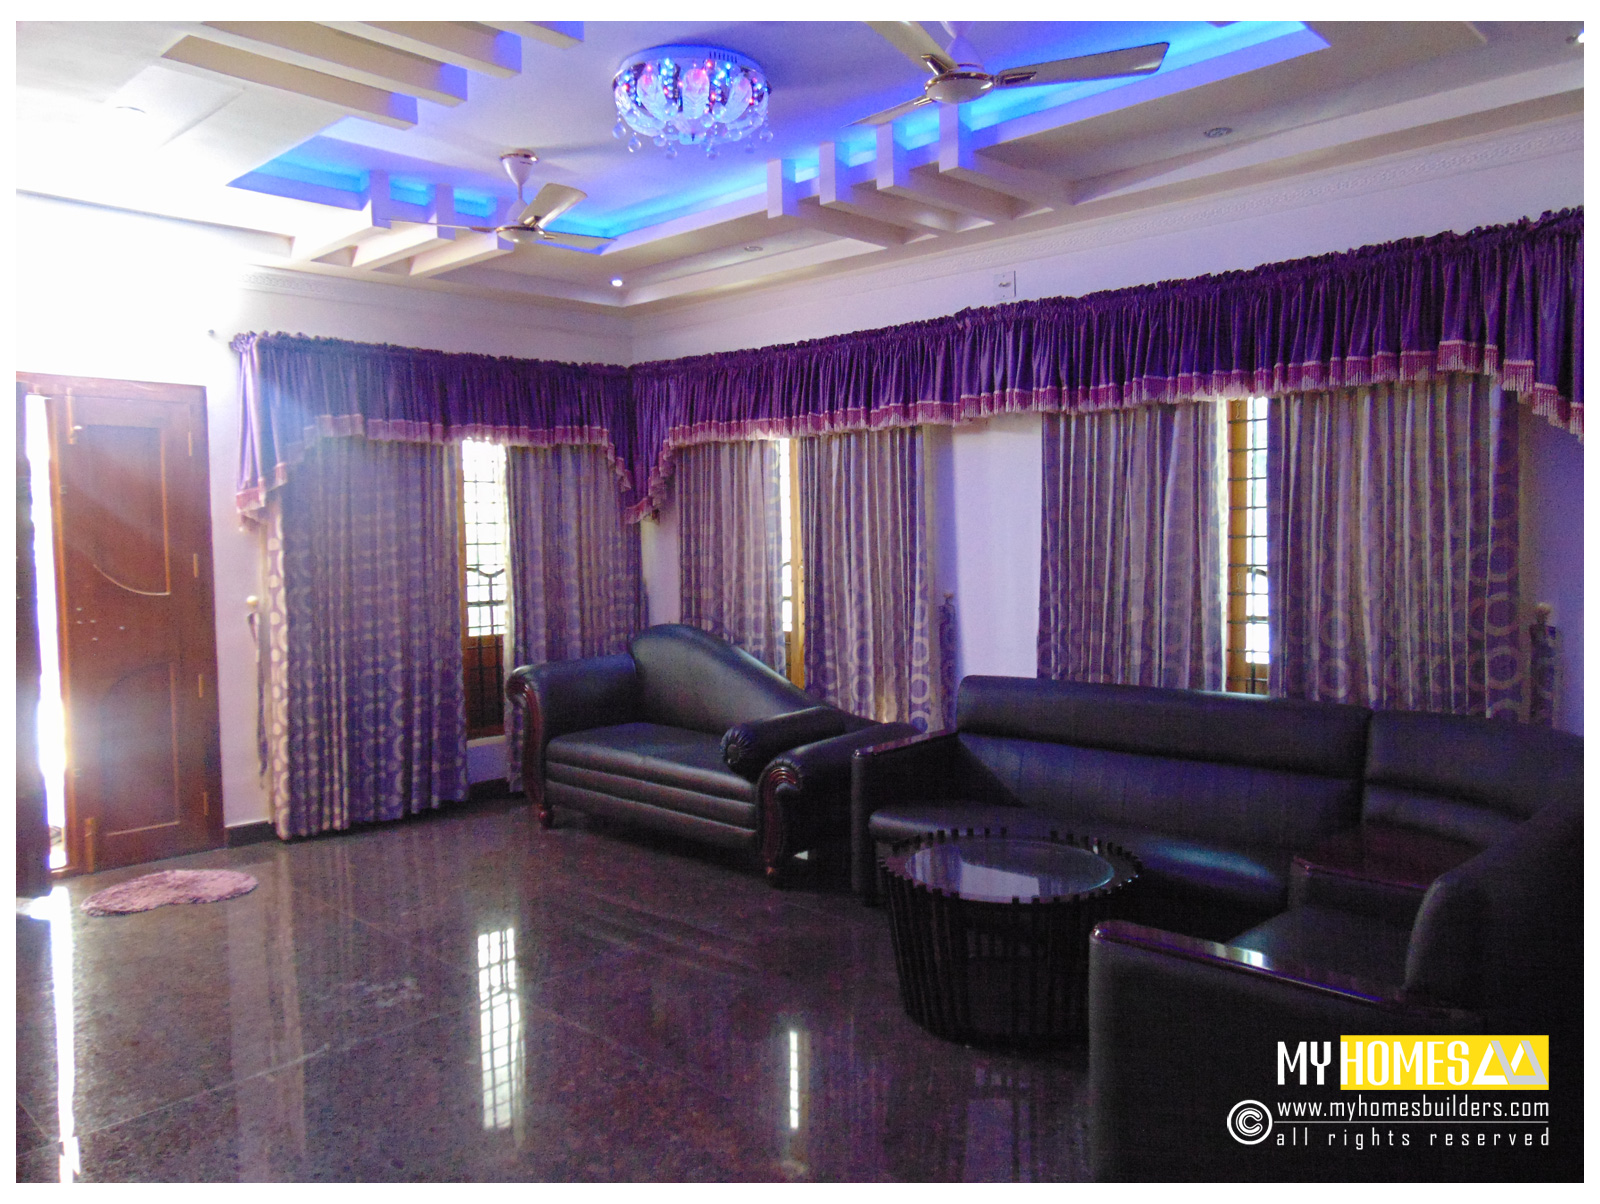 Living room interior designs in kerala Low cost interior design ideas india